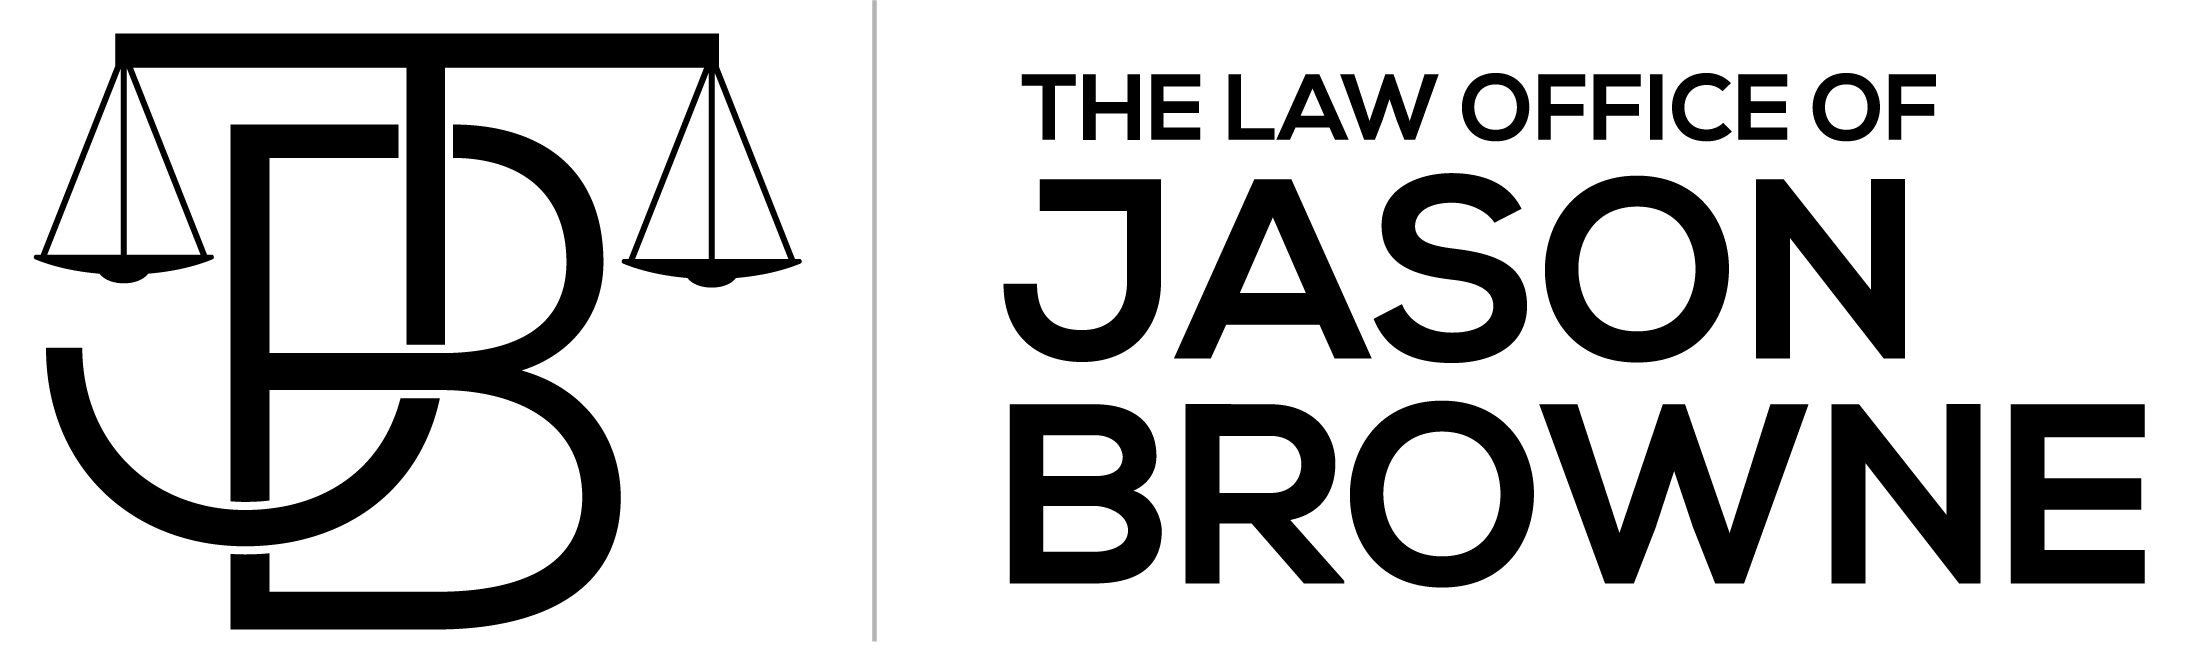 The Law Firm of Jason Browne